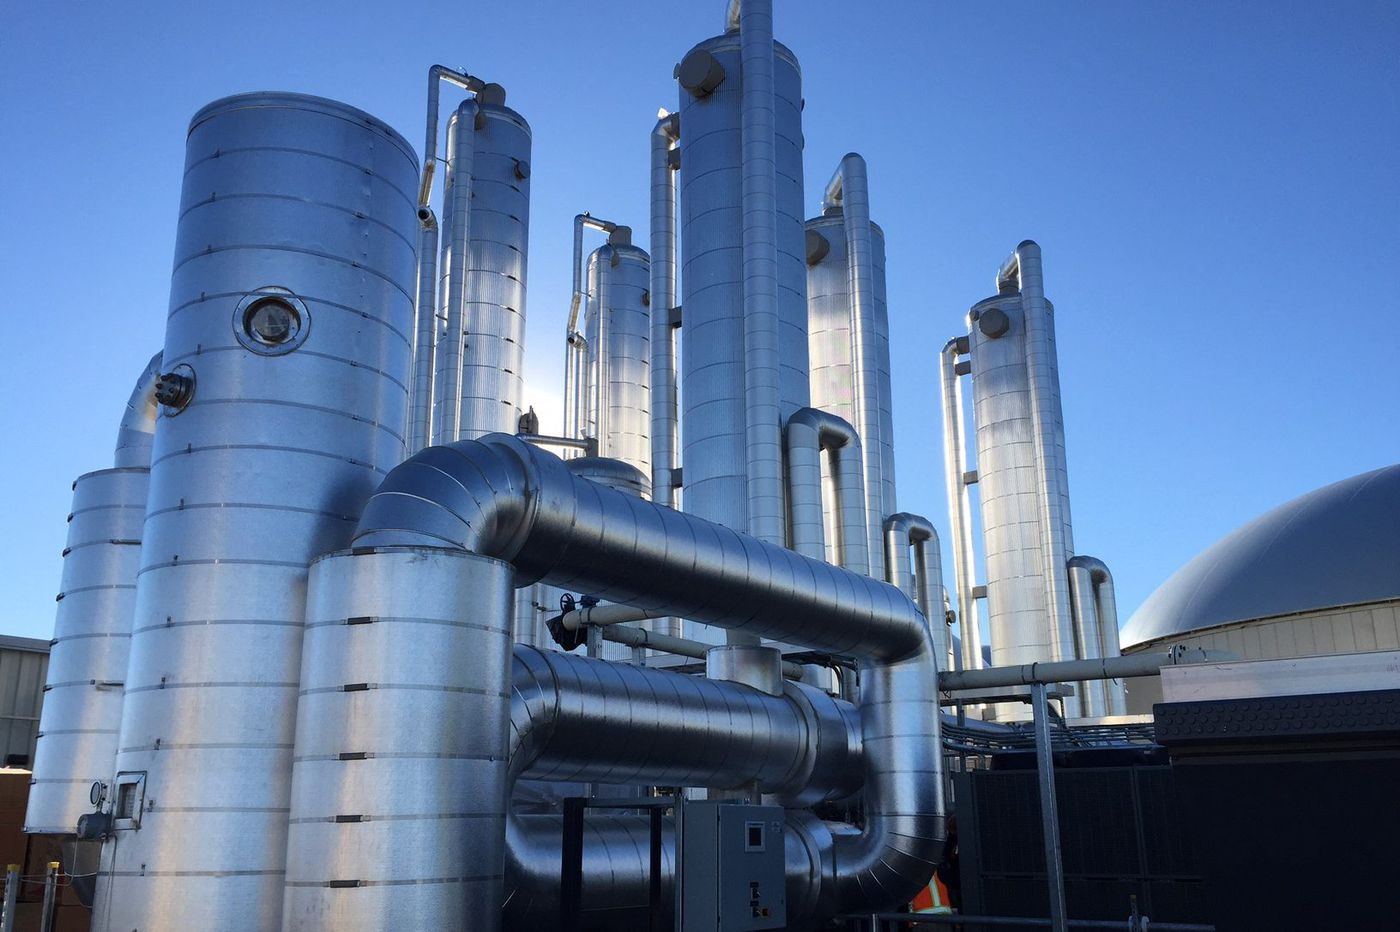 Philly refiner plans $120M plant to convert food scraps to fuel for trucks and buses